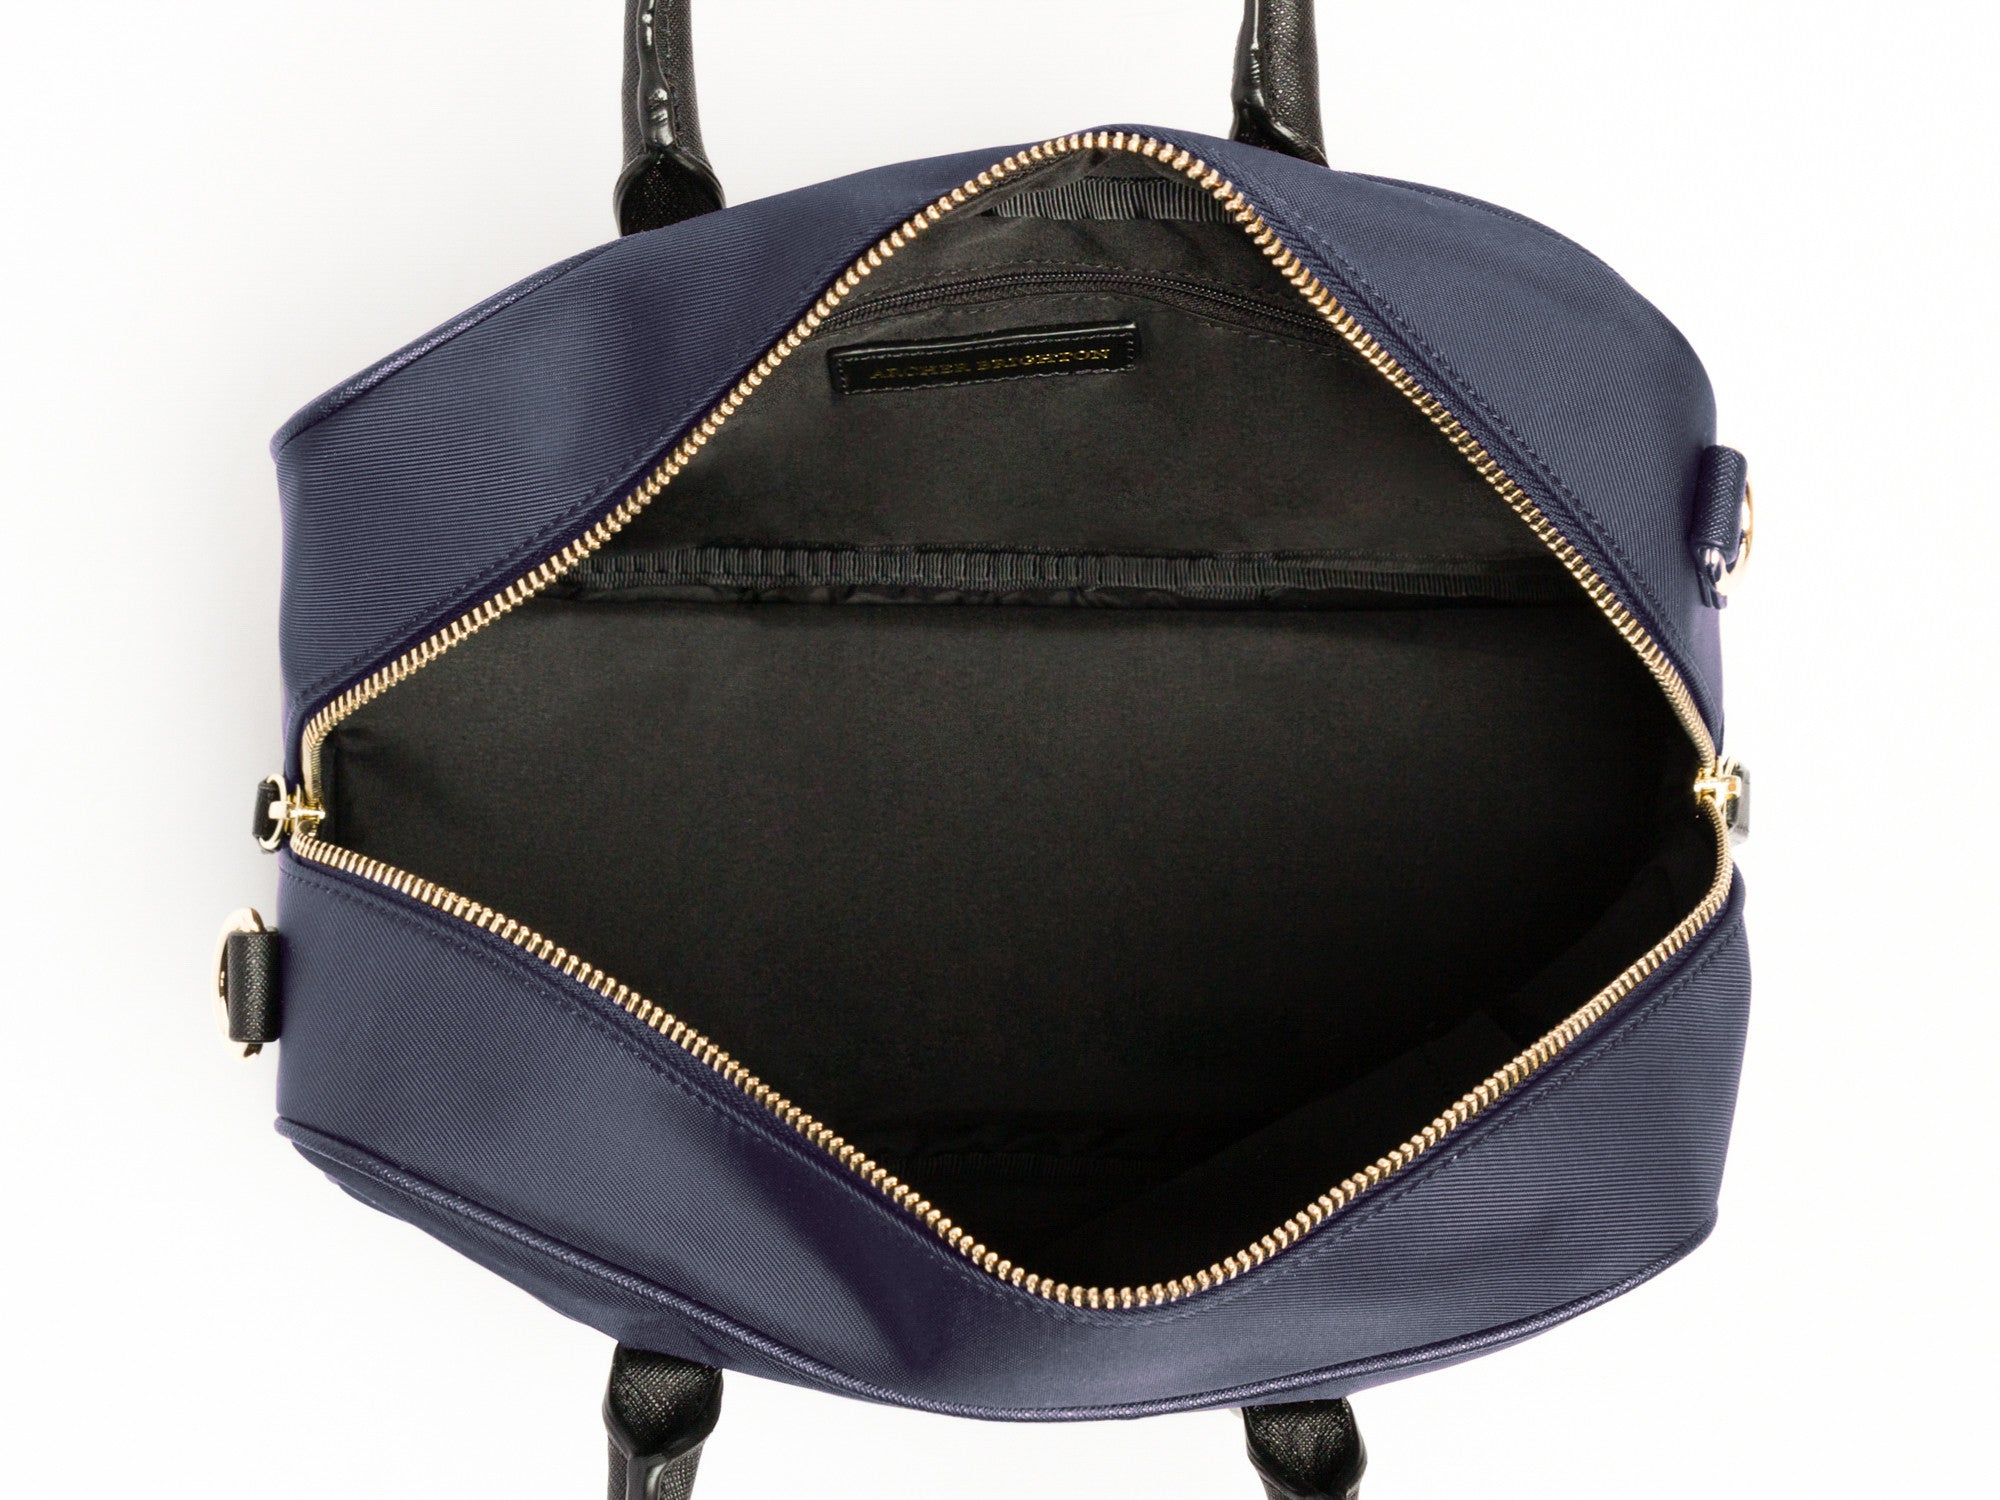 THE SOPHIE INSULATED BAG